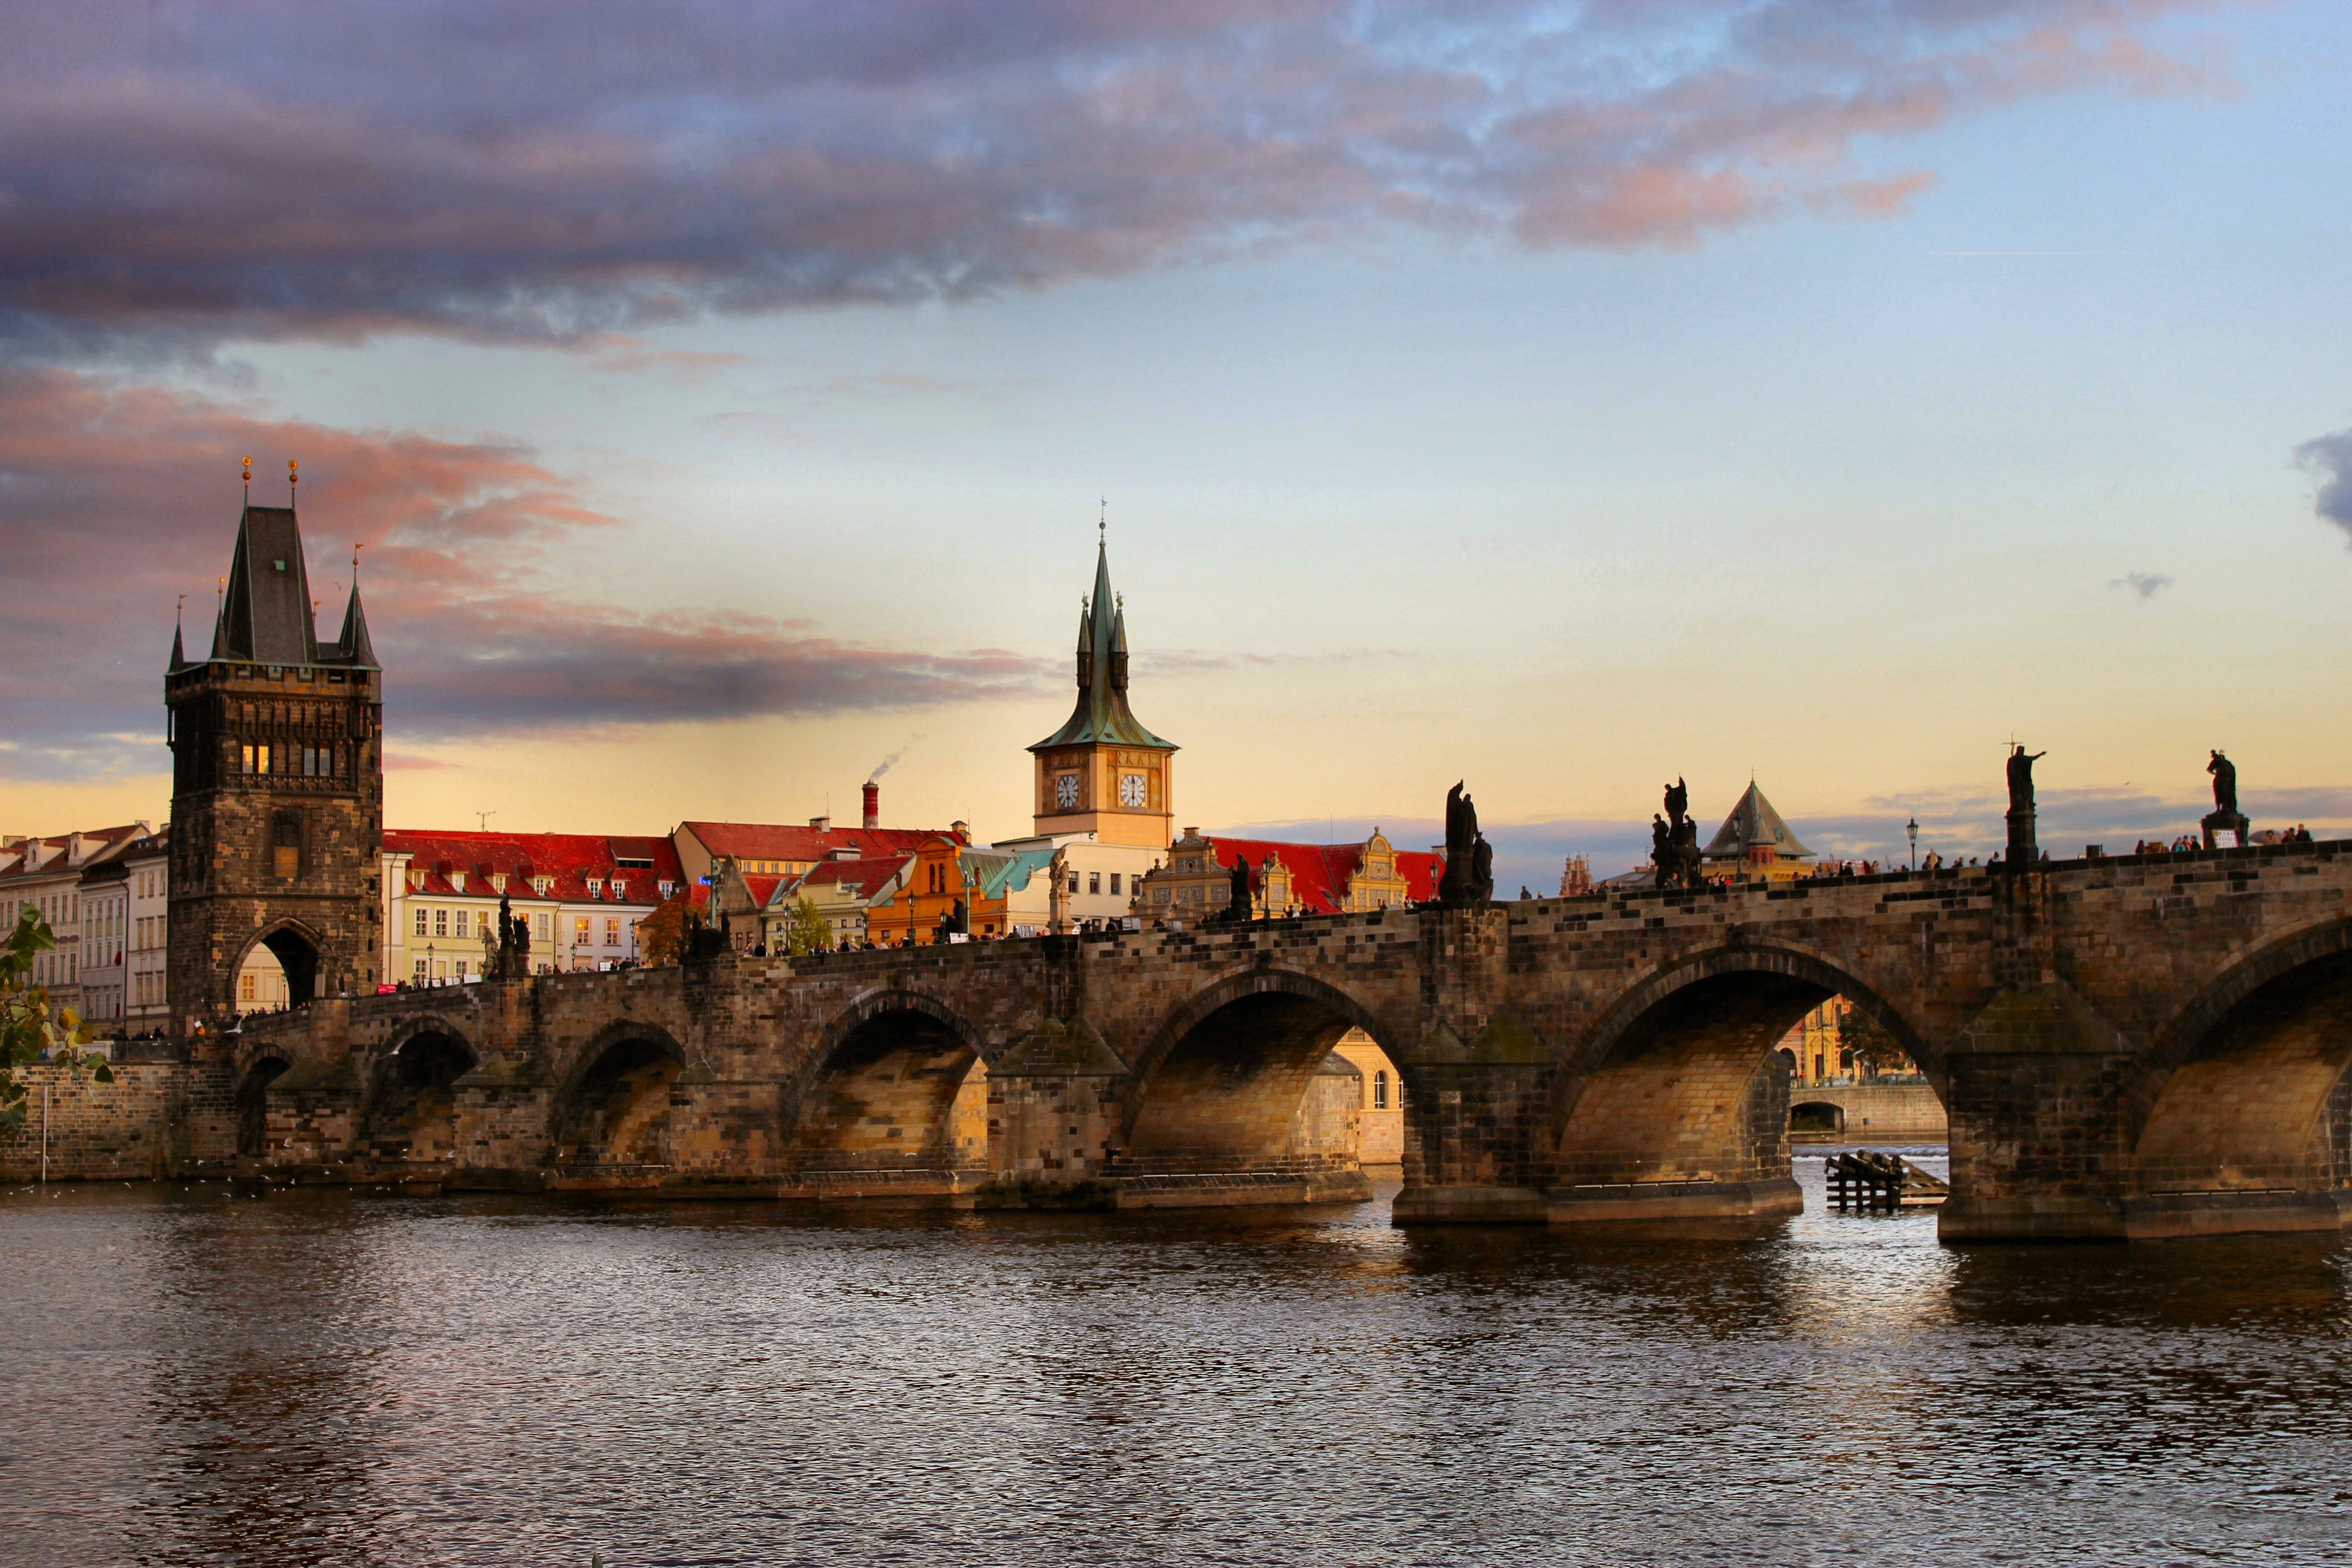 Charles Bridge Museum Prague, 7-prague-mala-strana-view-of-karlov-most-charles-bridge - Stephen ...